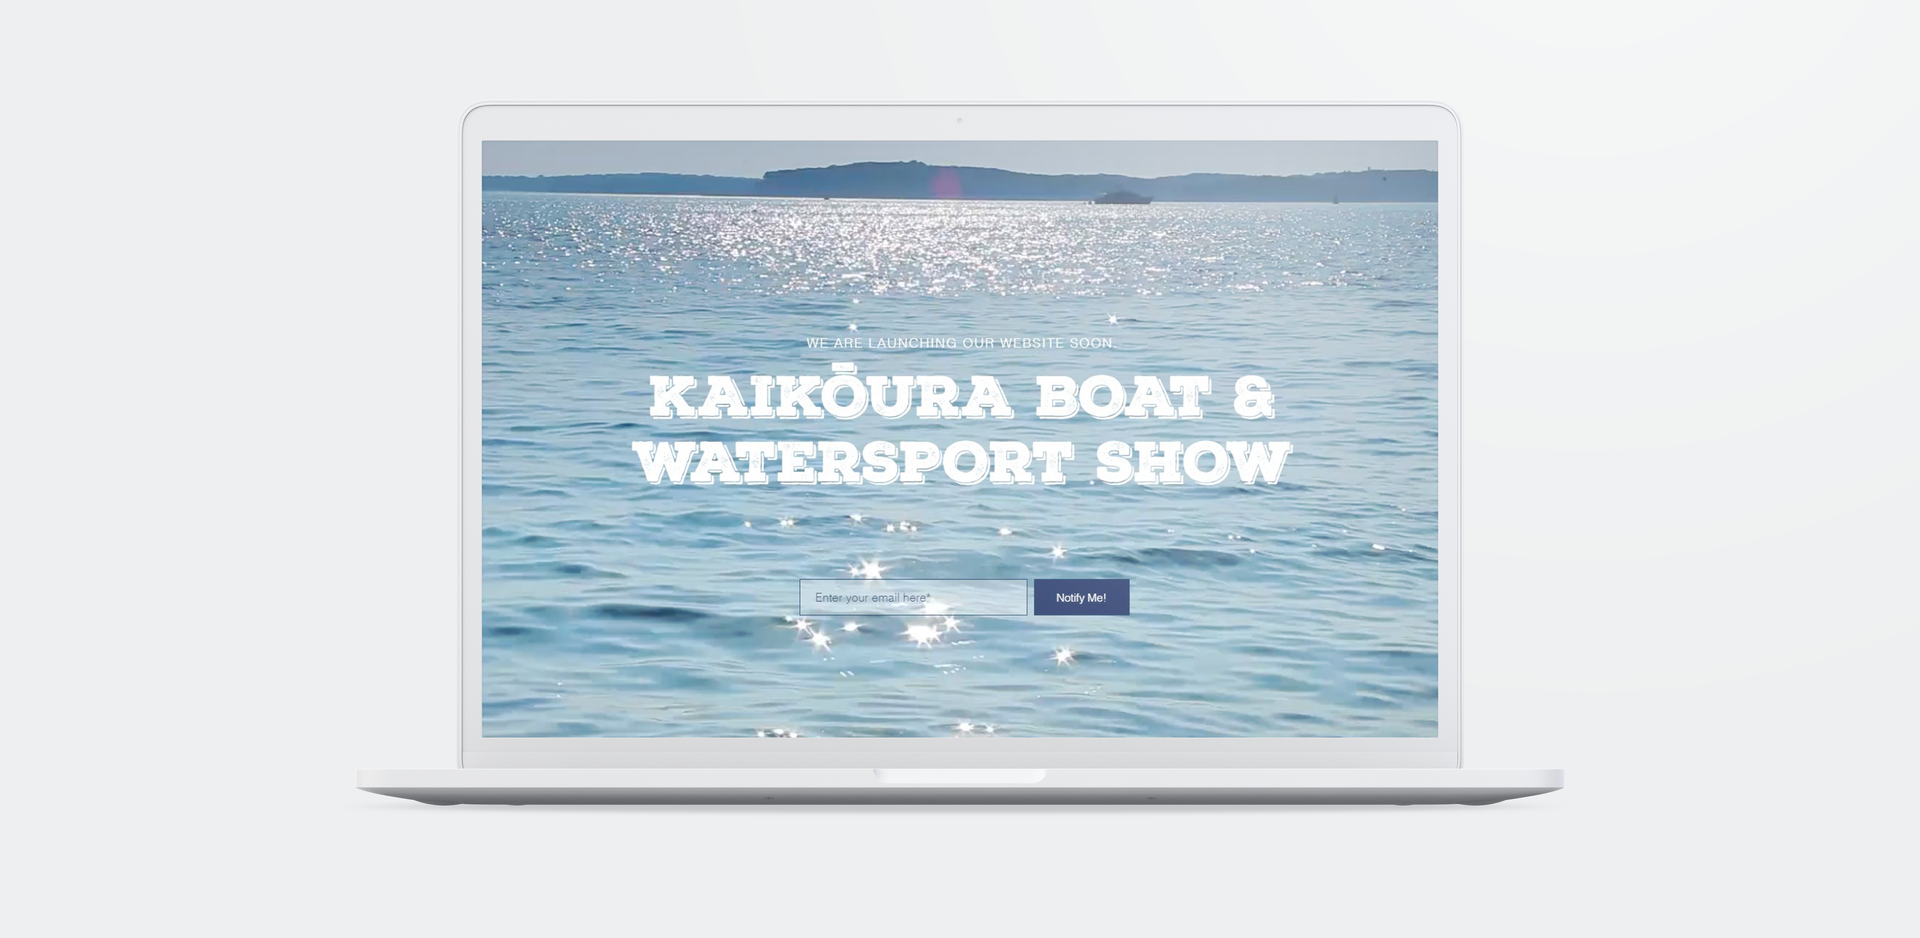 Kaikoura Boat & Watersports Show